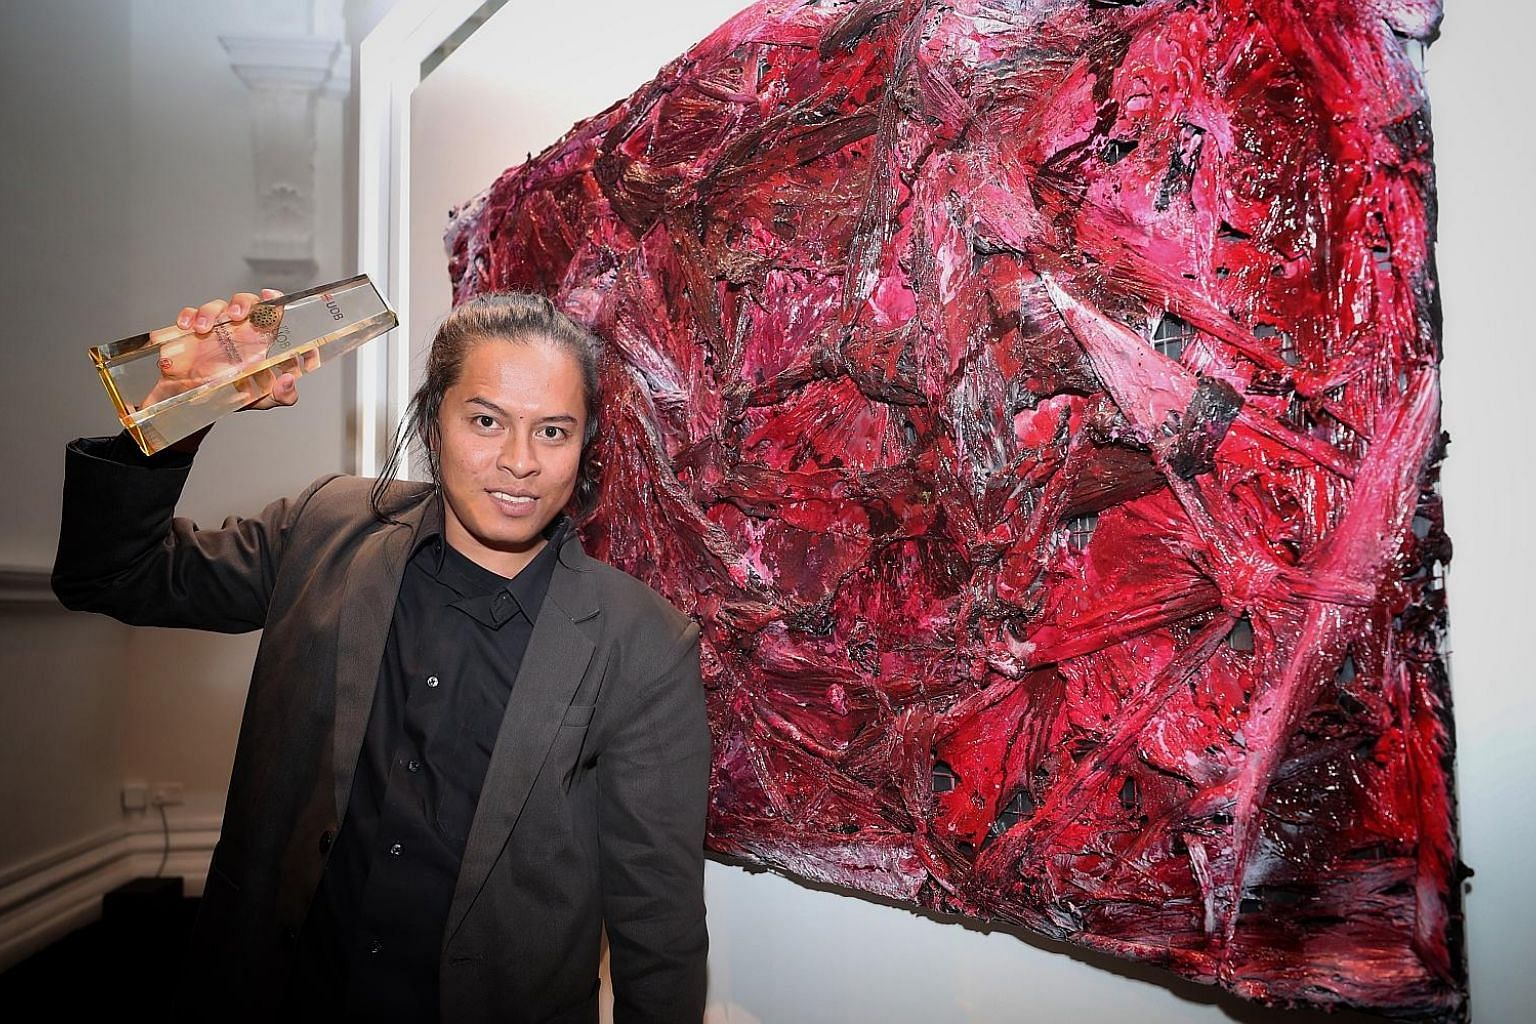 Suvi Wahyudianto (left) won the UOB South-east Asian Painting of the Year for Angs't (ANGST), while Khairulddin Abdul Wahab (above) won the UOB Painting of the Year (Singapore) for Rite Of Passage. The winning paintings will be exhibited at the UOB A